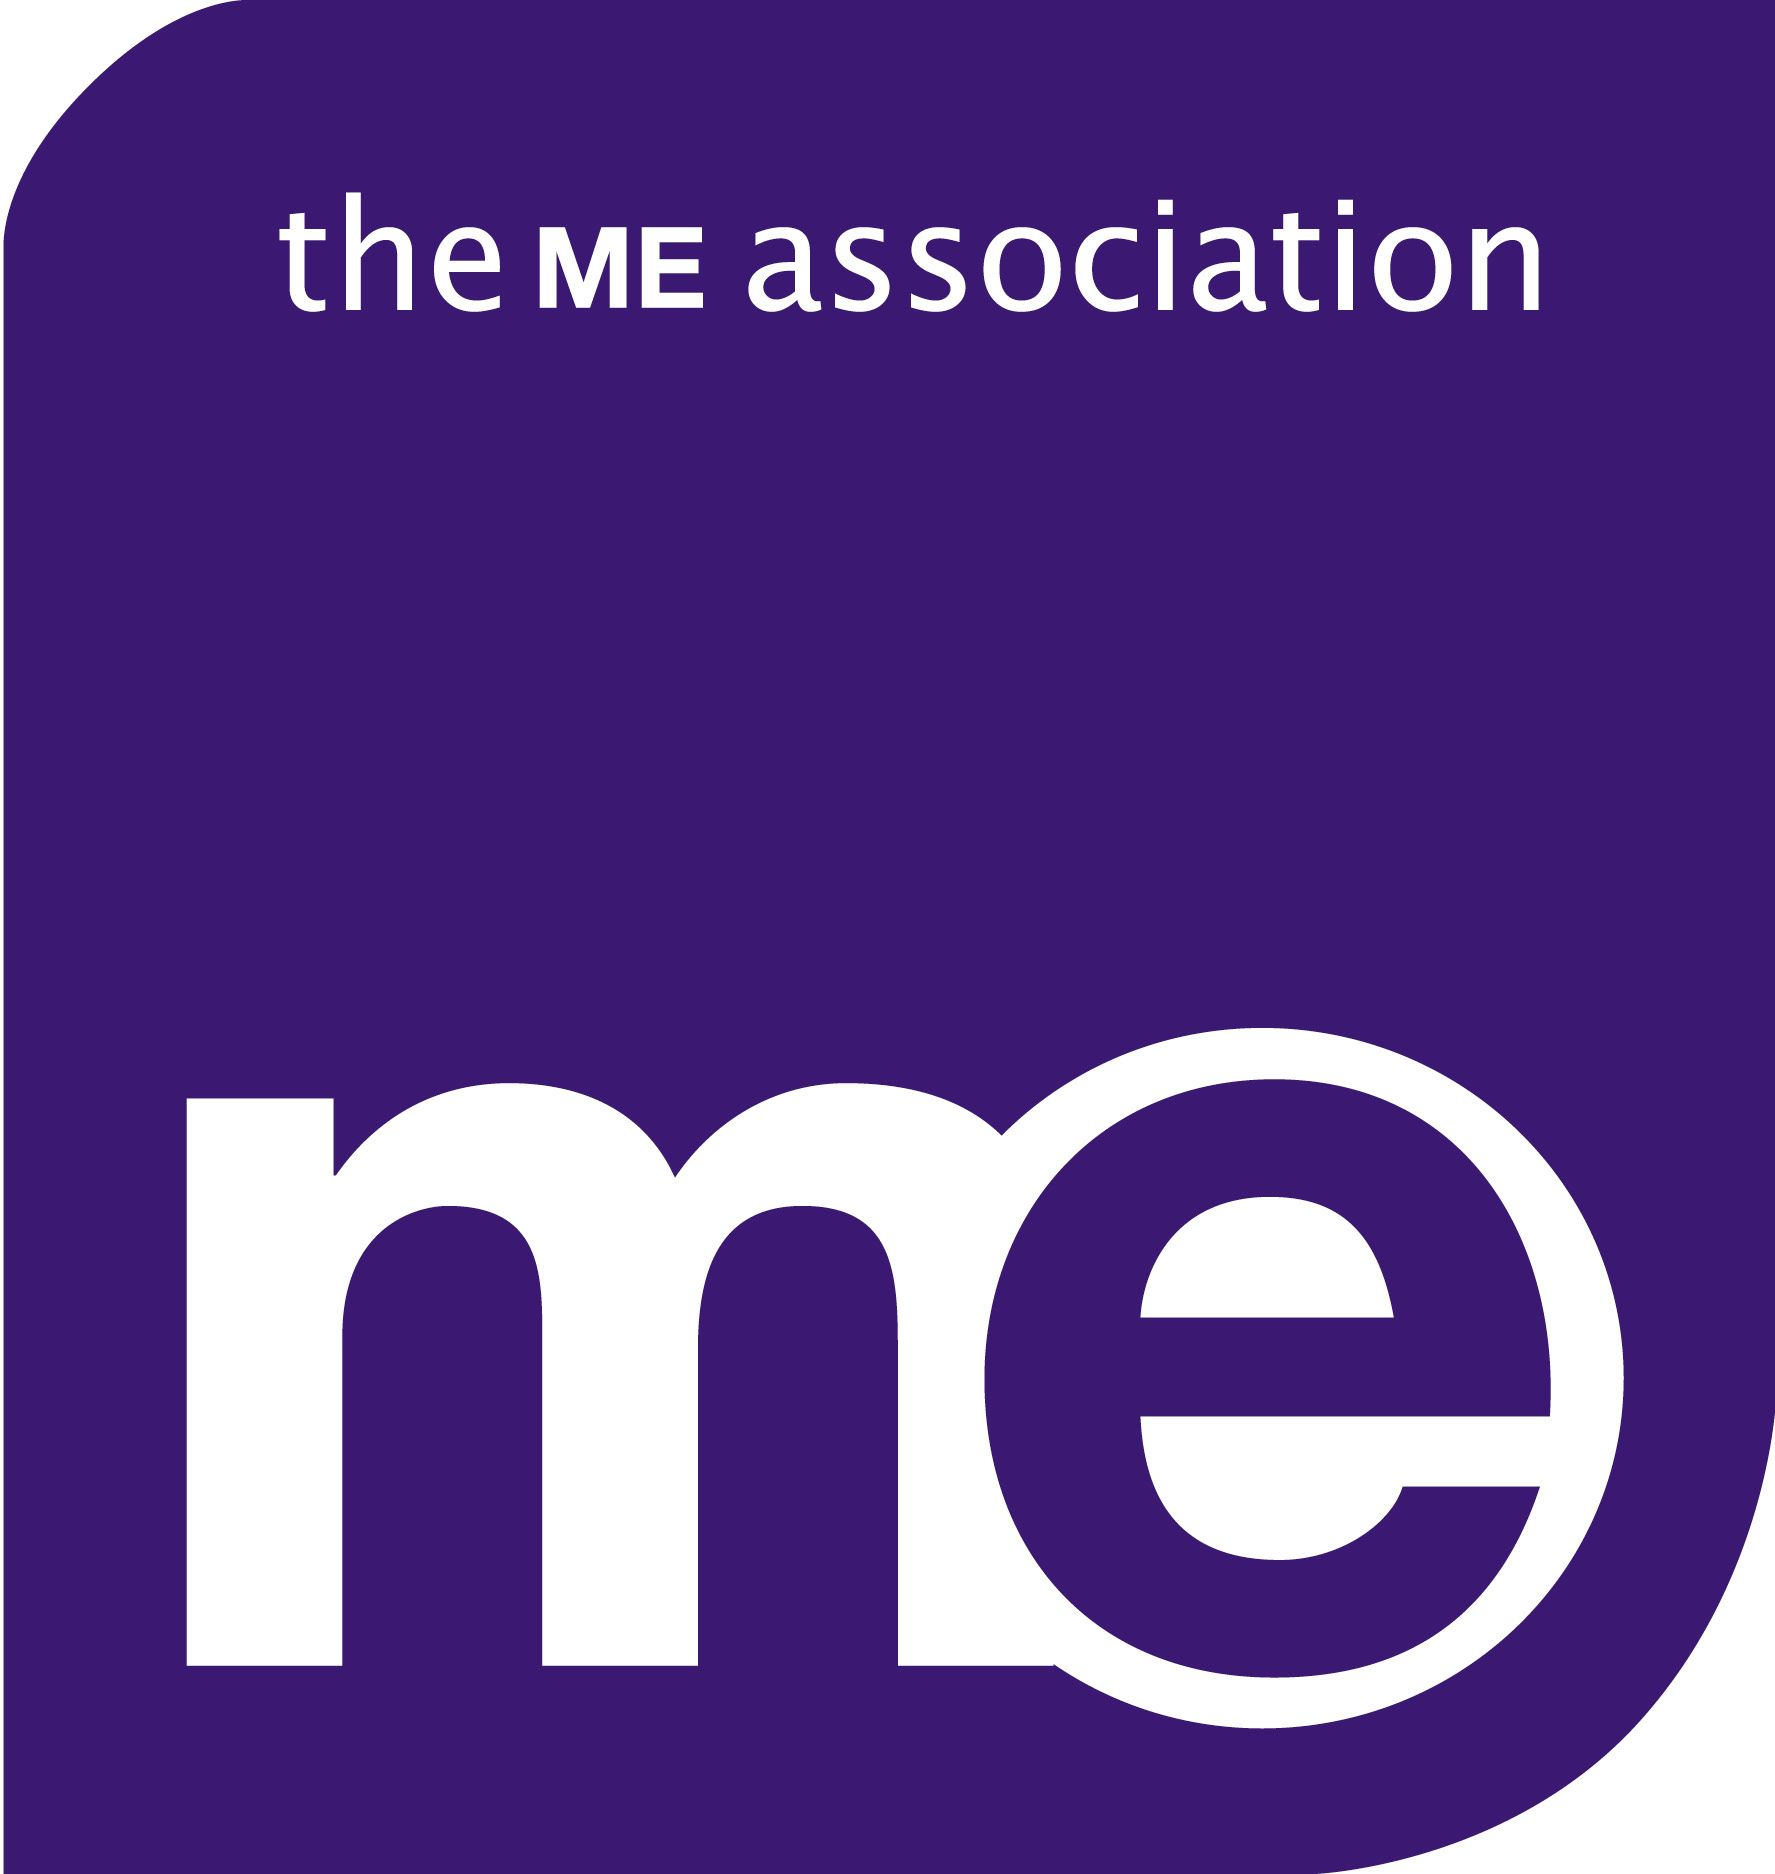 About Me Logo - ME-LOGO-INDESIGN - Giving Tuesday